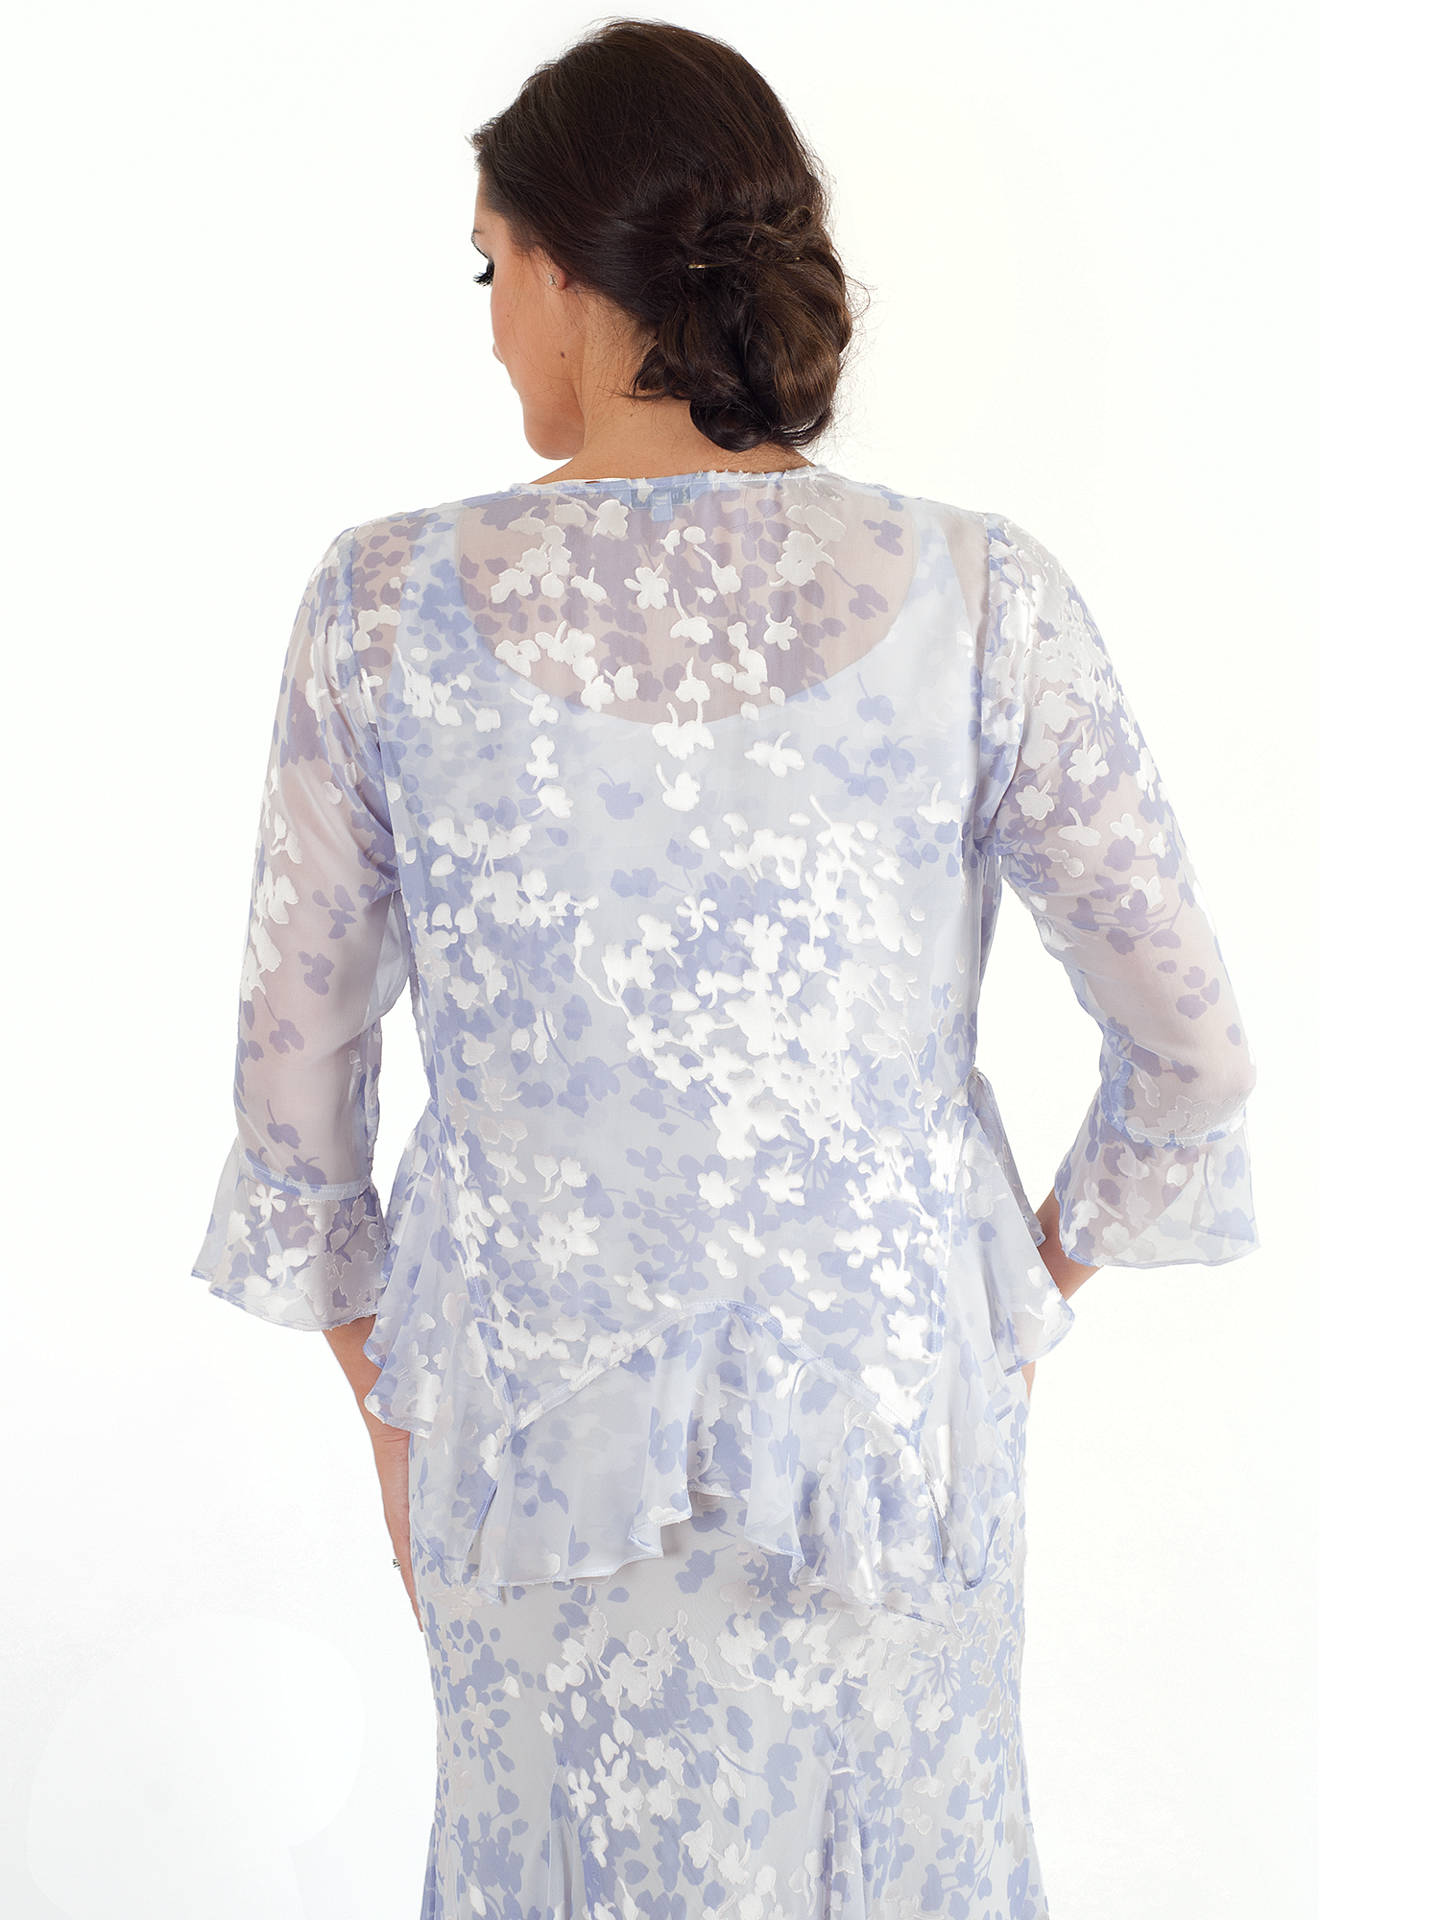 BuyChesca Lace Cap Devoree Applique Shrug, Lilac, 16 Online at johnlewis.com